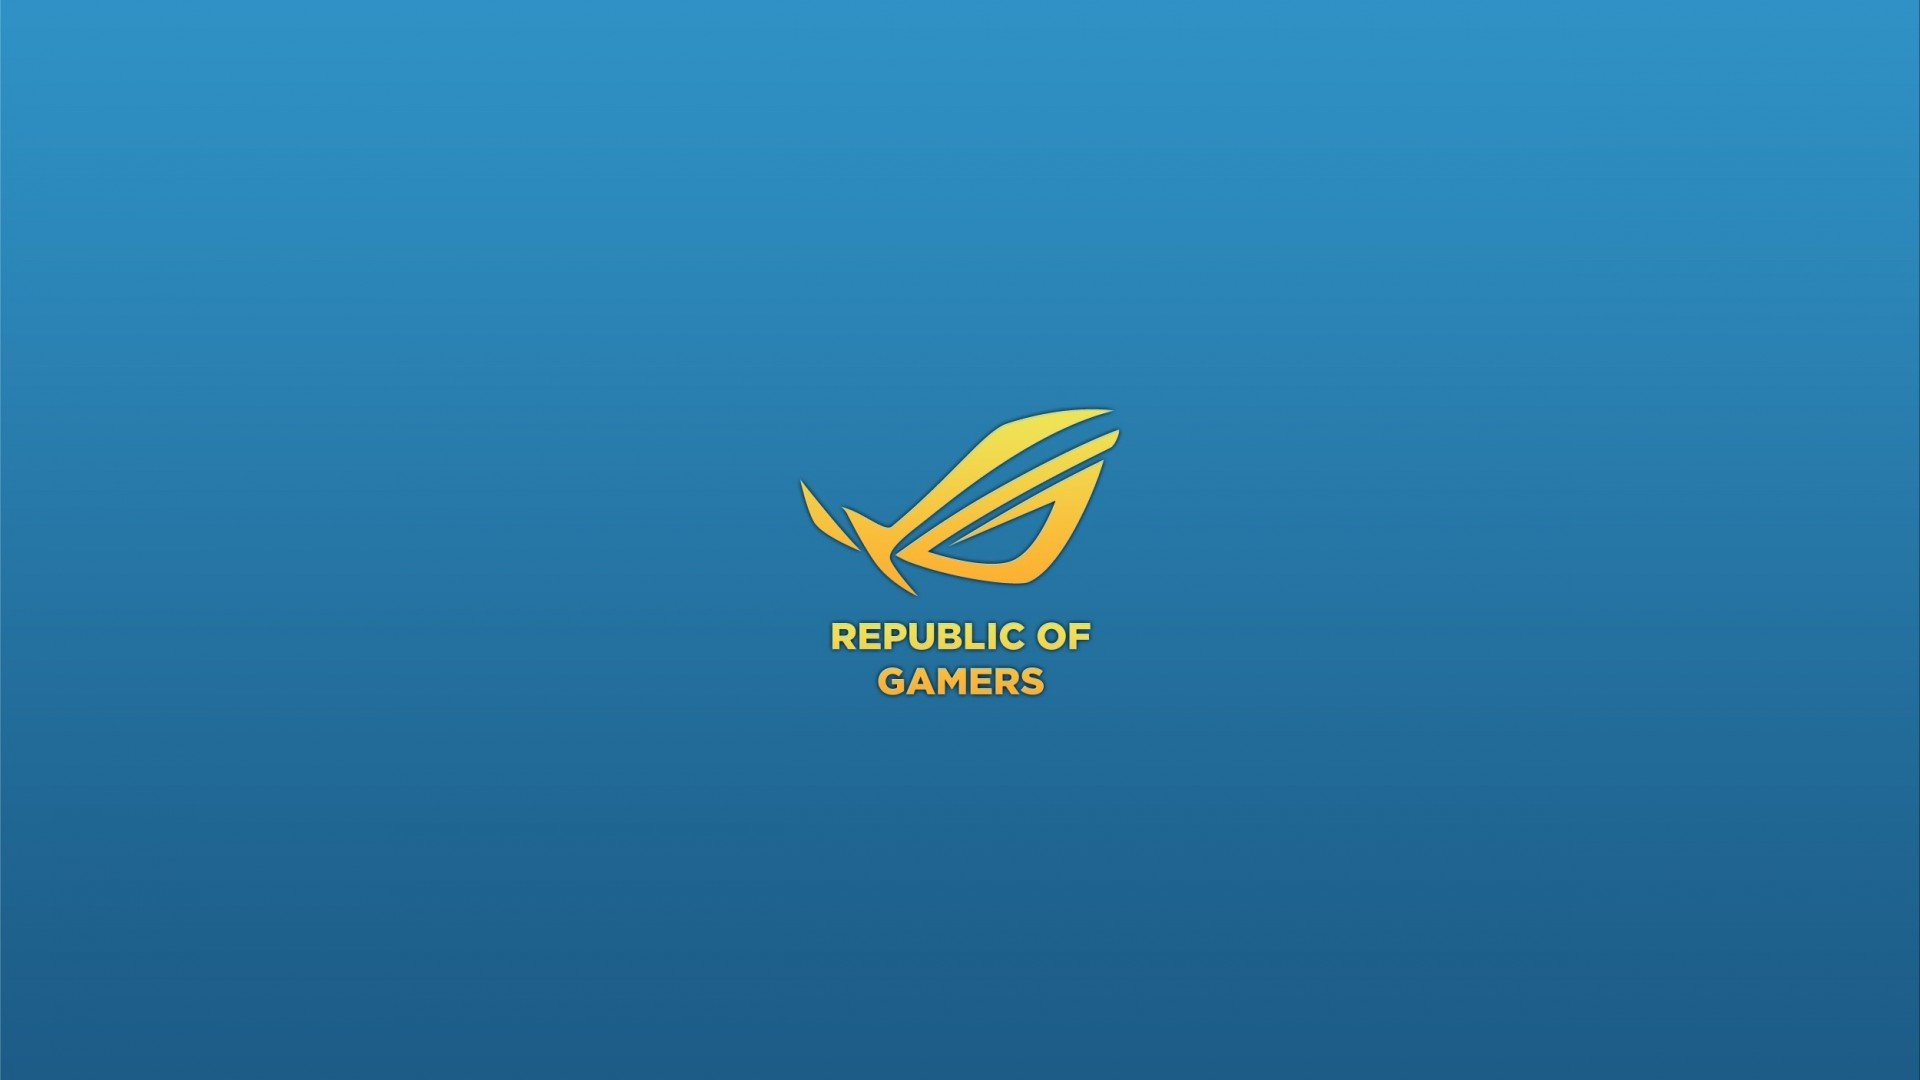 80 809707 asus republic gamers computer game wallpaper blue and